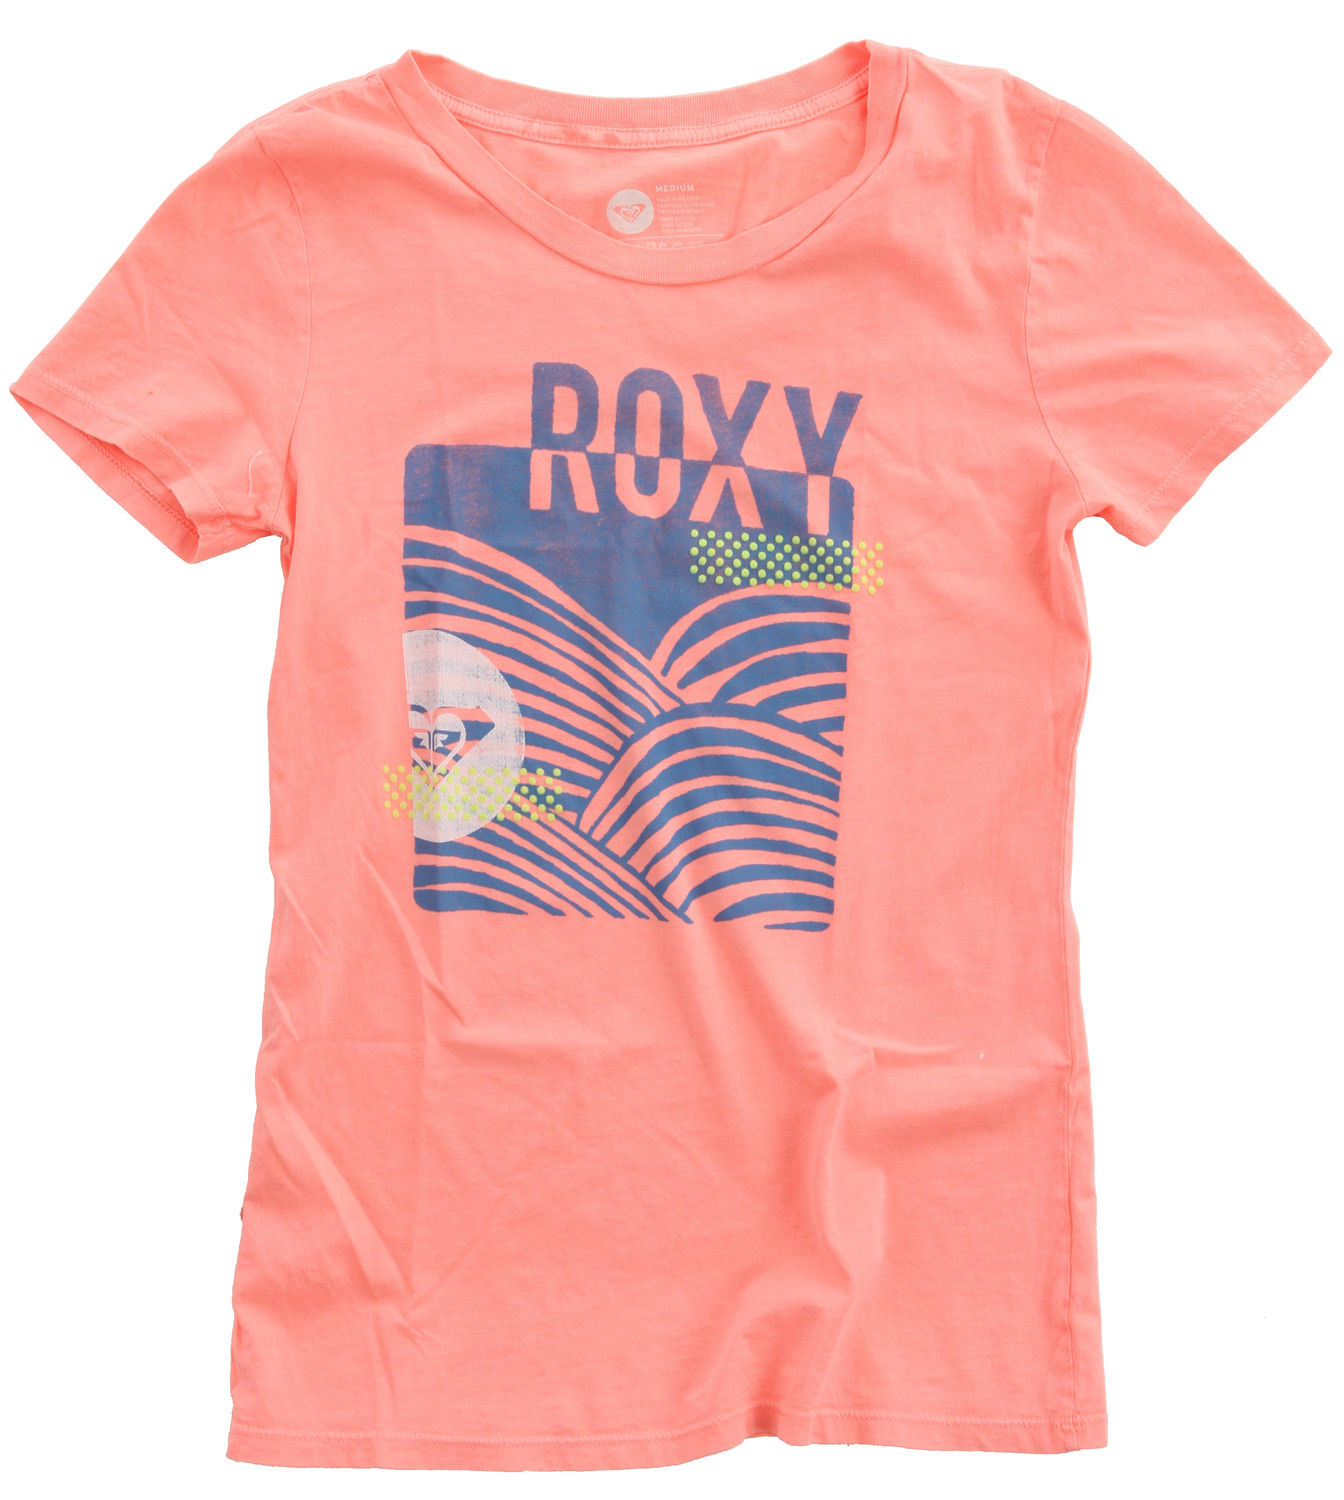 "Surf Key Features of the Roxy Wave On Wave T-Shirt: 100% cotton jersey 40/1's garment dyed short sleeve slim crew neck tee 27"" hps - $14.95"